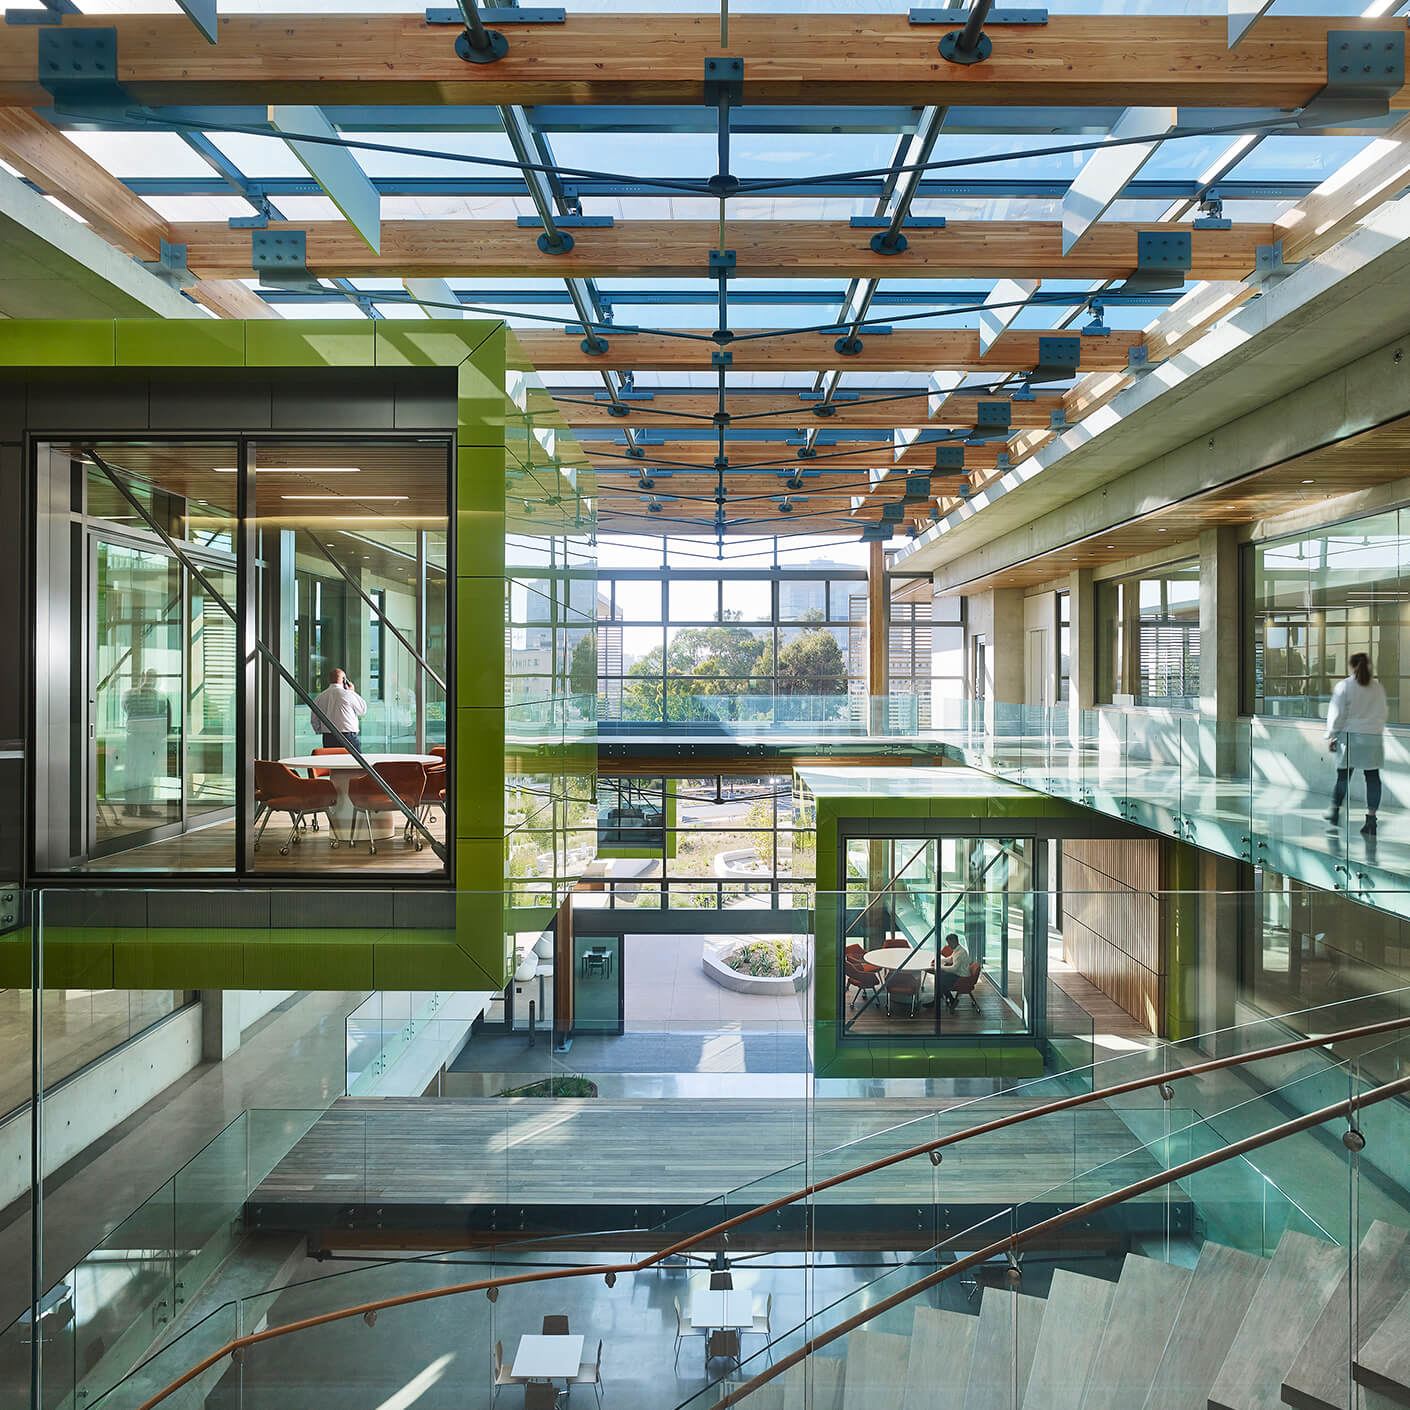 Central atrium with green meeting pods